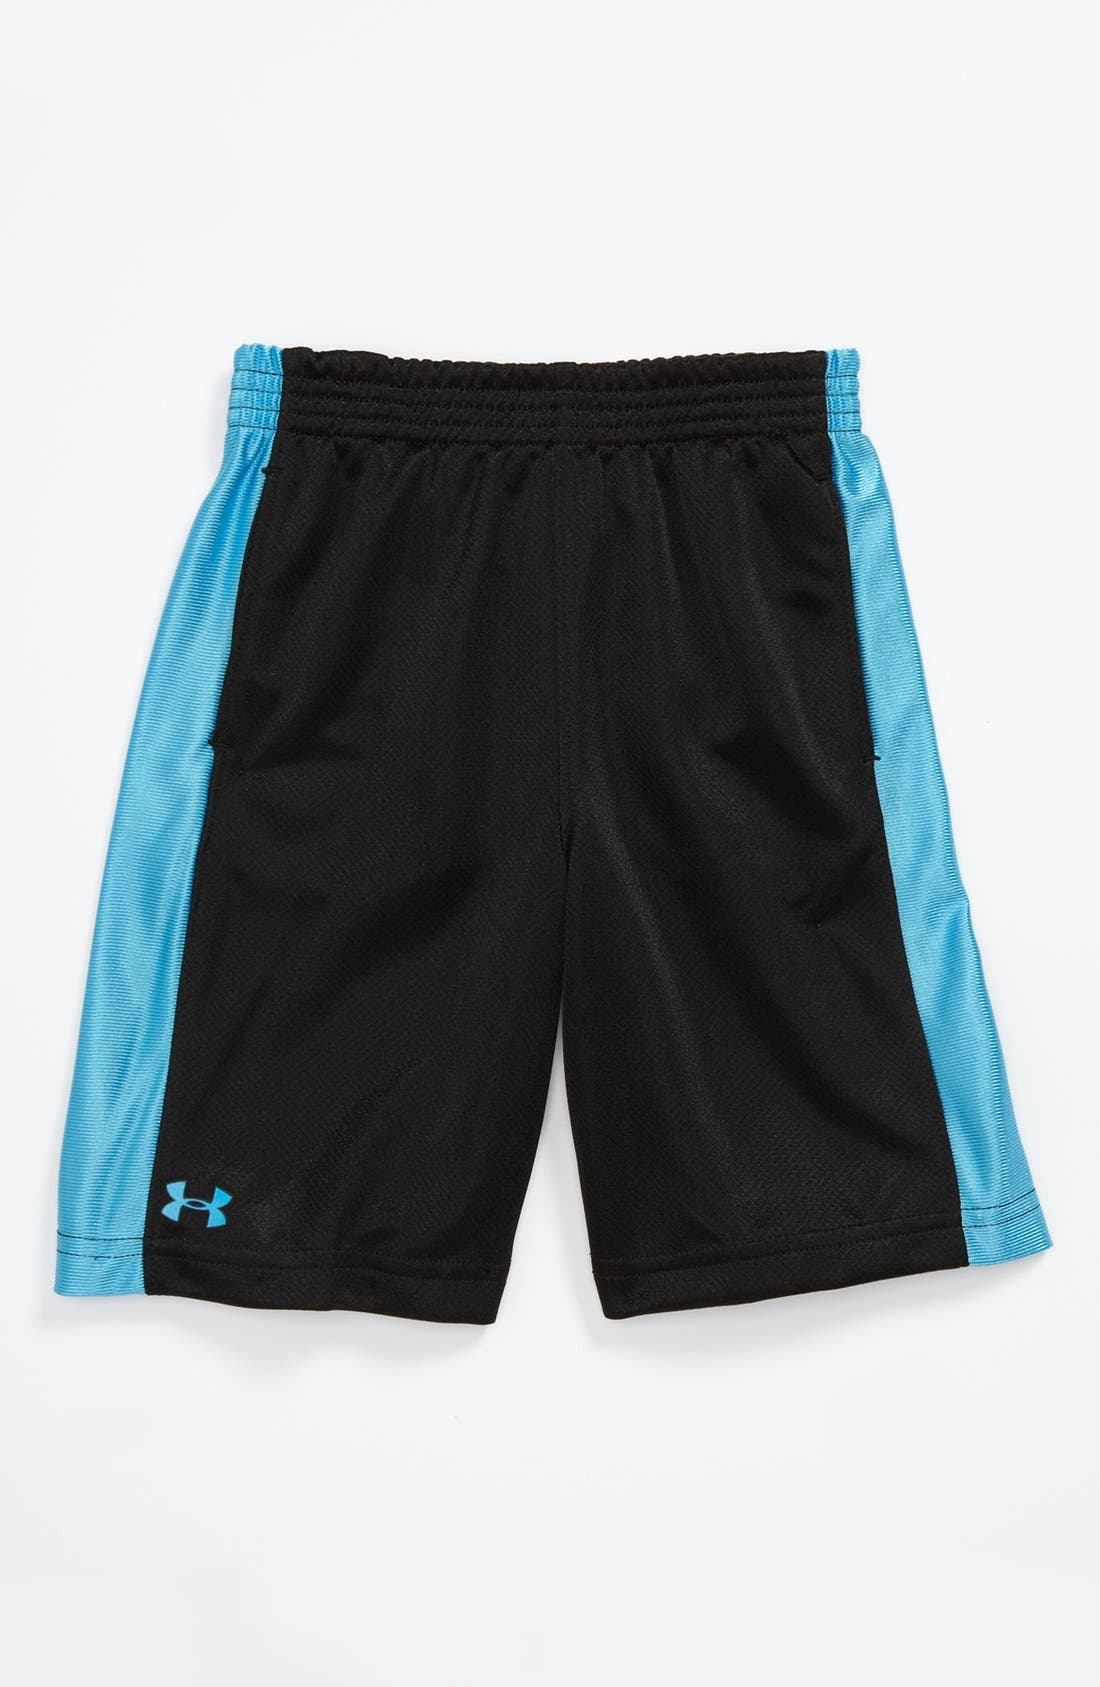 Alternate Image 1 Selected - Under Armour Shorts (Toddler)